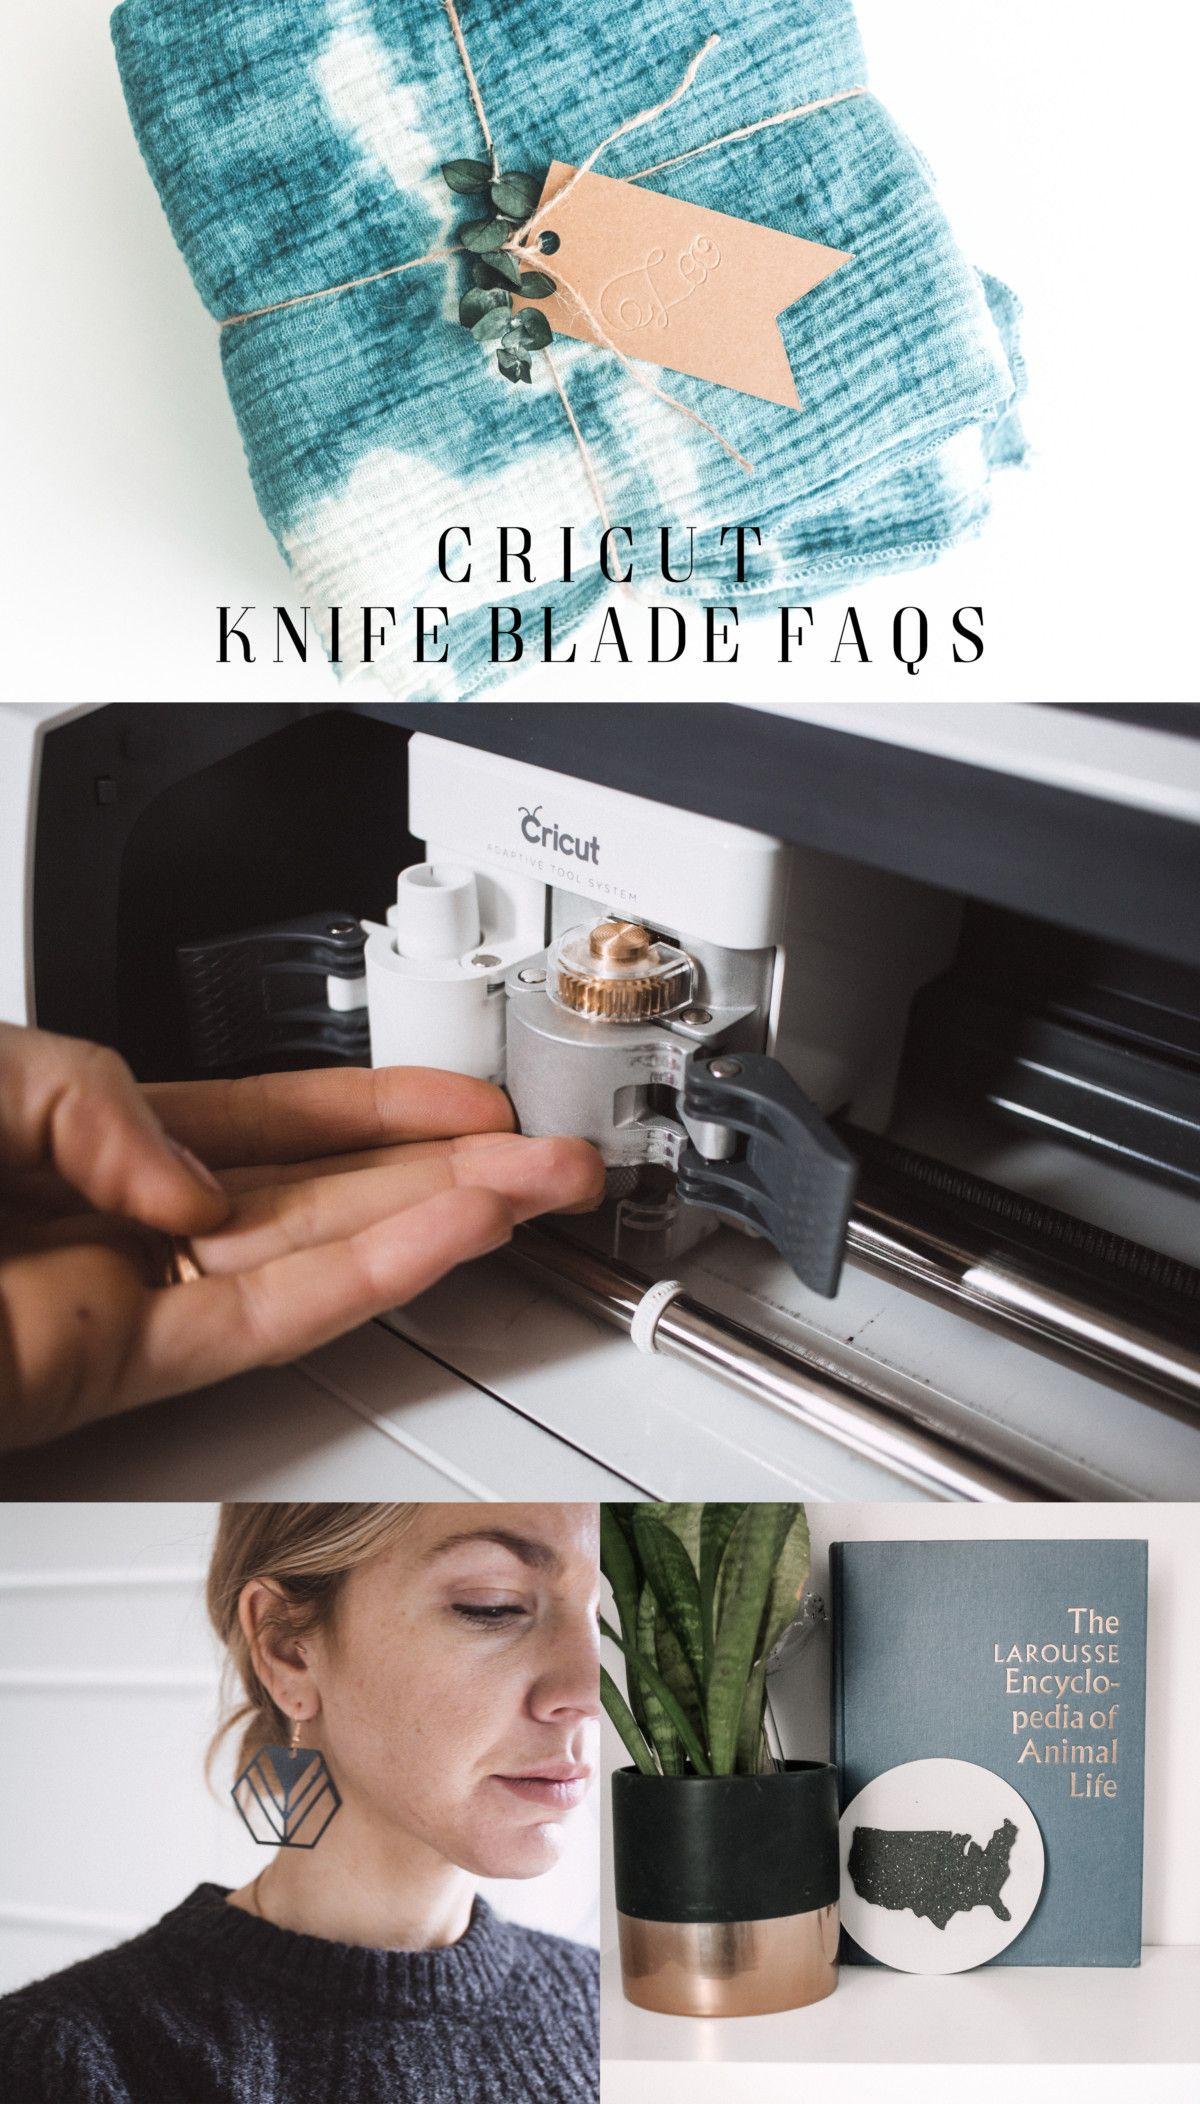 Cricut knife blade faqs answered practical and pretty